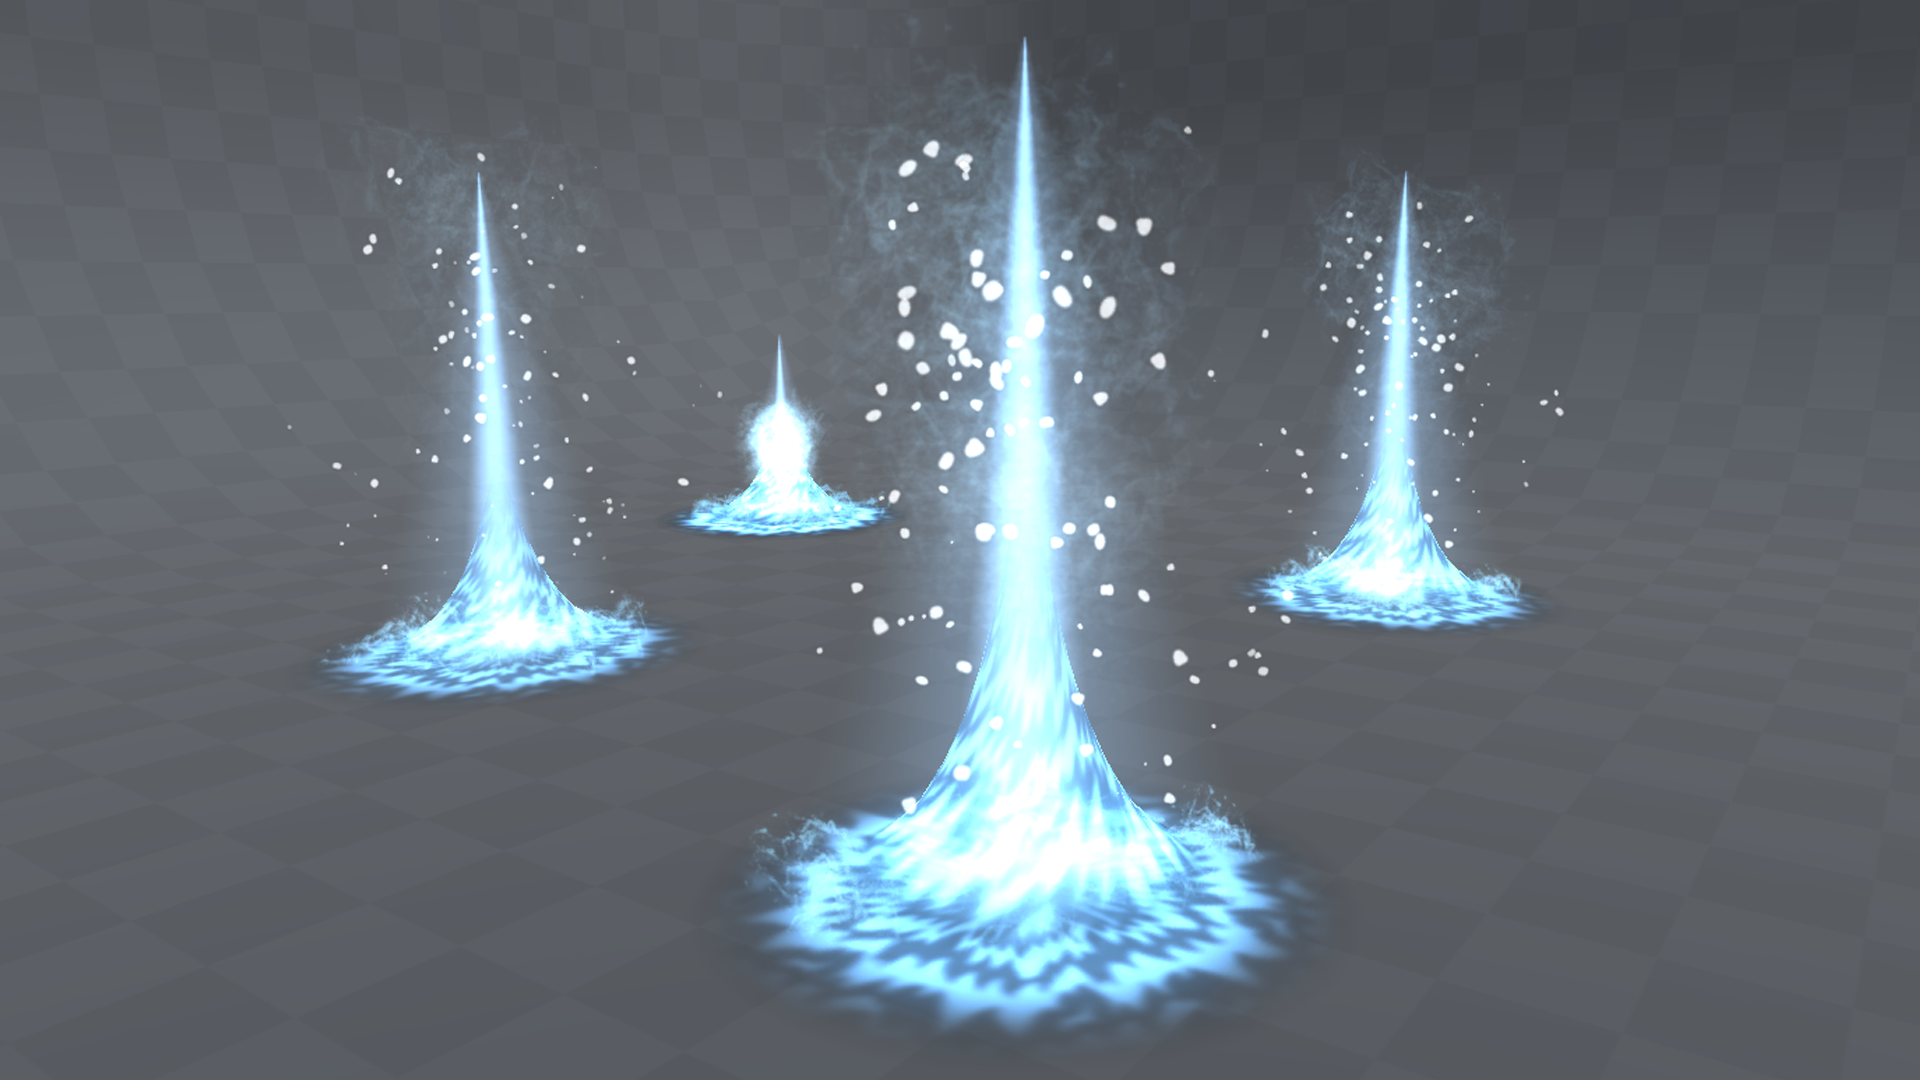 Water spikes VFX